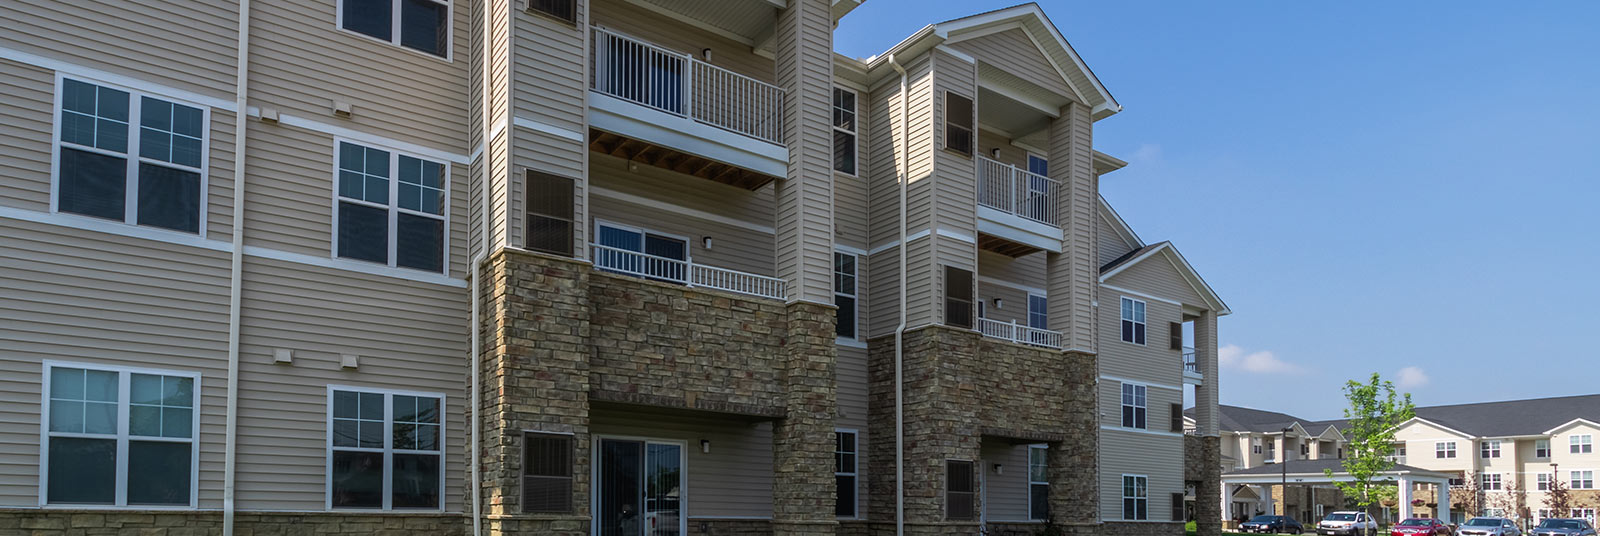 A close up of the units at the StoryPoint senior living community in Grove City, Ohio